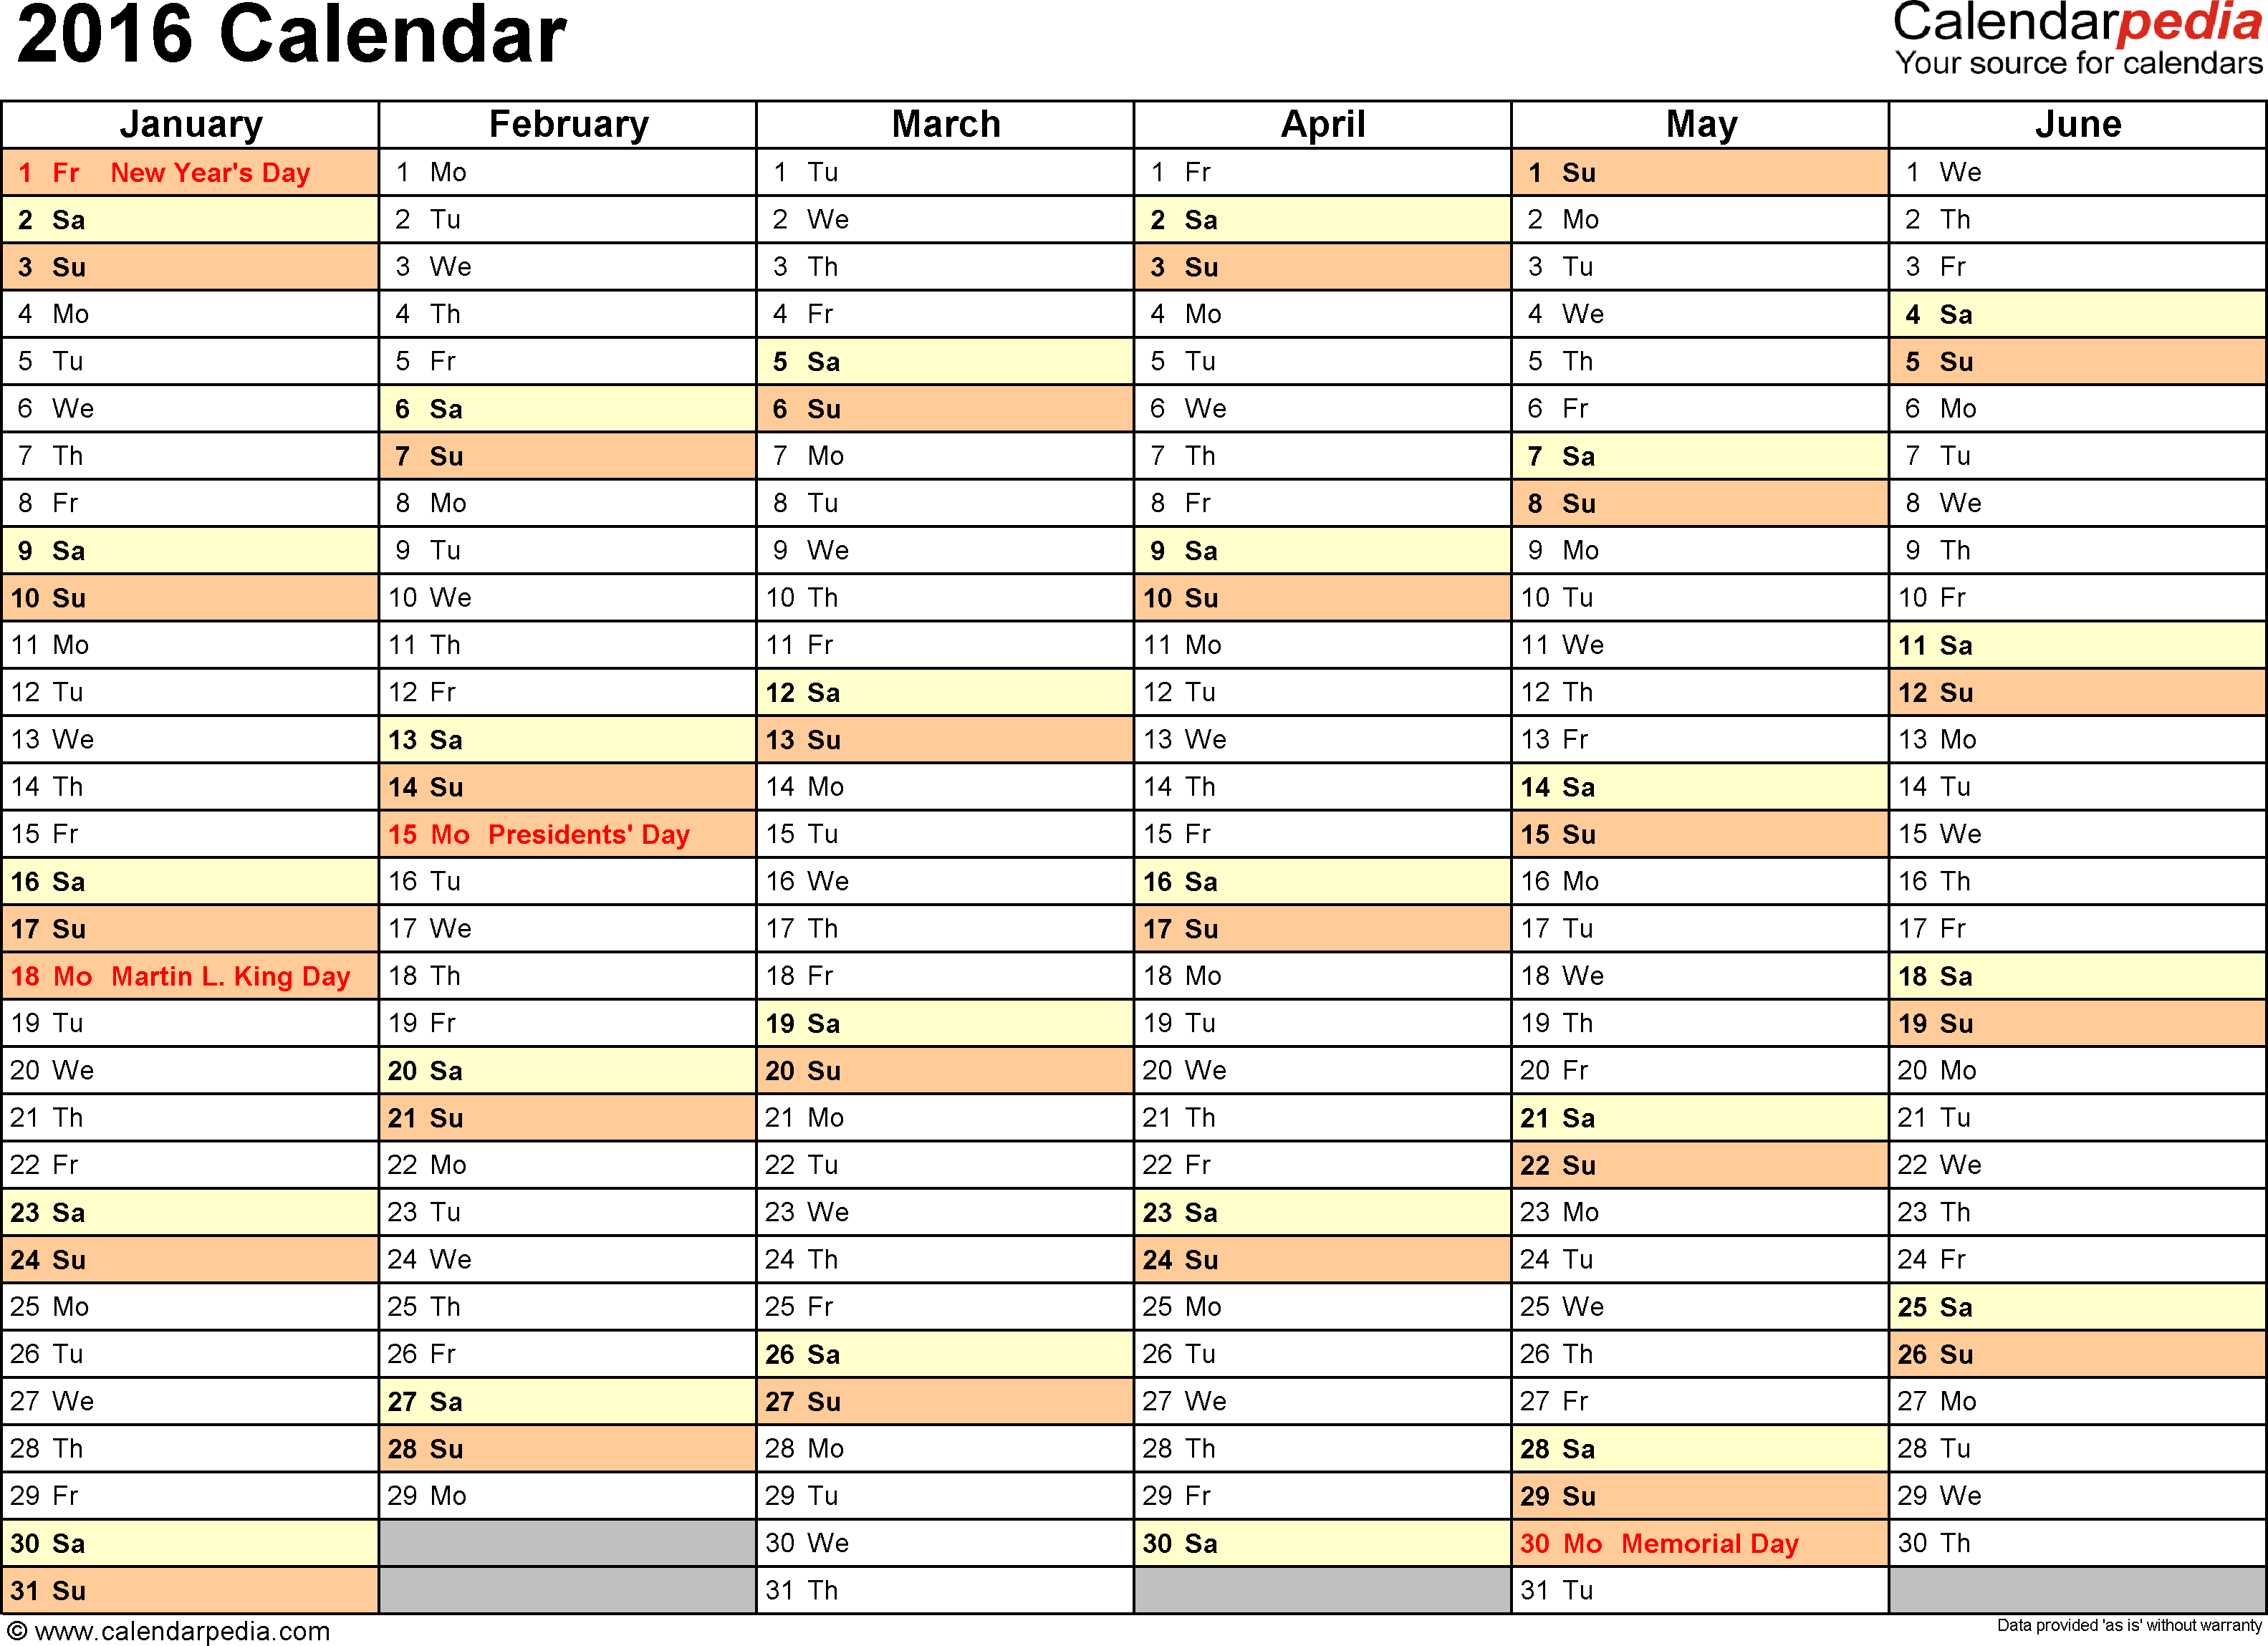 Ediblewildsus  Terrific  Calendar  Download  Free Printable Excel Templates Xls With Interesting Template   Calendar For Excel Months Horizontally  Pages Landscape Orientation With Charming Add Columns Excel Also Construction Timeline Template Excel In Addition Buy Microsoft Excel For Mac And Highlight Active Cell In Excel As Well As Import Excel To Google Calendar Additionally Versions Of Microsoft Excel From Calendarpediacom With Ediblewildsus  Interesting  Calendar  Download  Free Printable Excel Templates Xls With Charming Template   Calendar For Excel Months Horizontally  Pages Landscape Orientation And Terrific Add Columns Excel Also Construction Timeline Template Excel In Addition Buy Microsoft Excel For Mac From Calendarpediacom